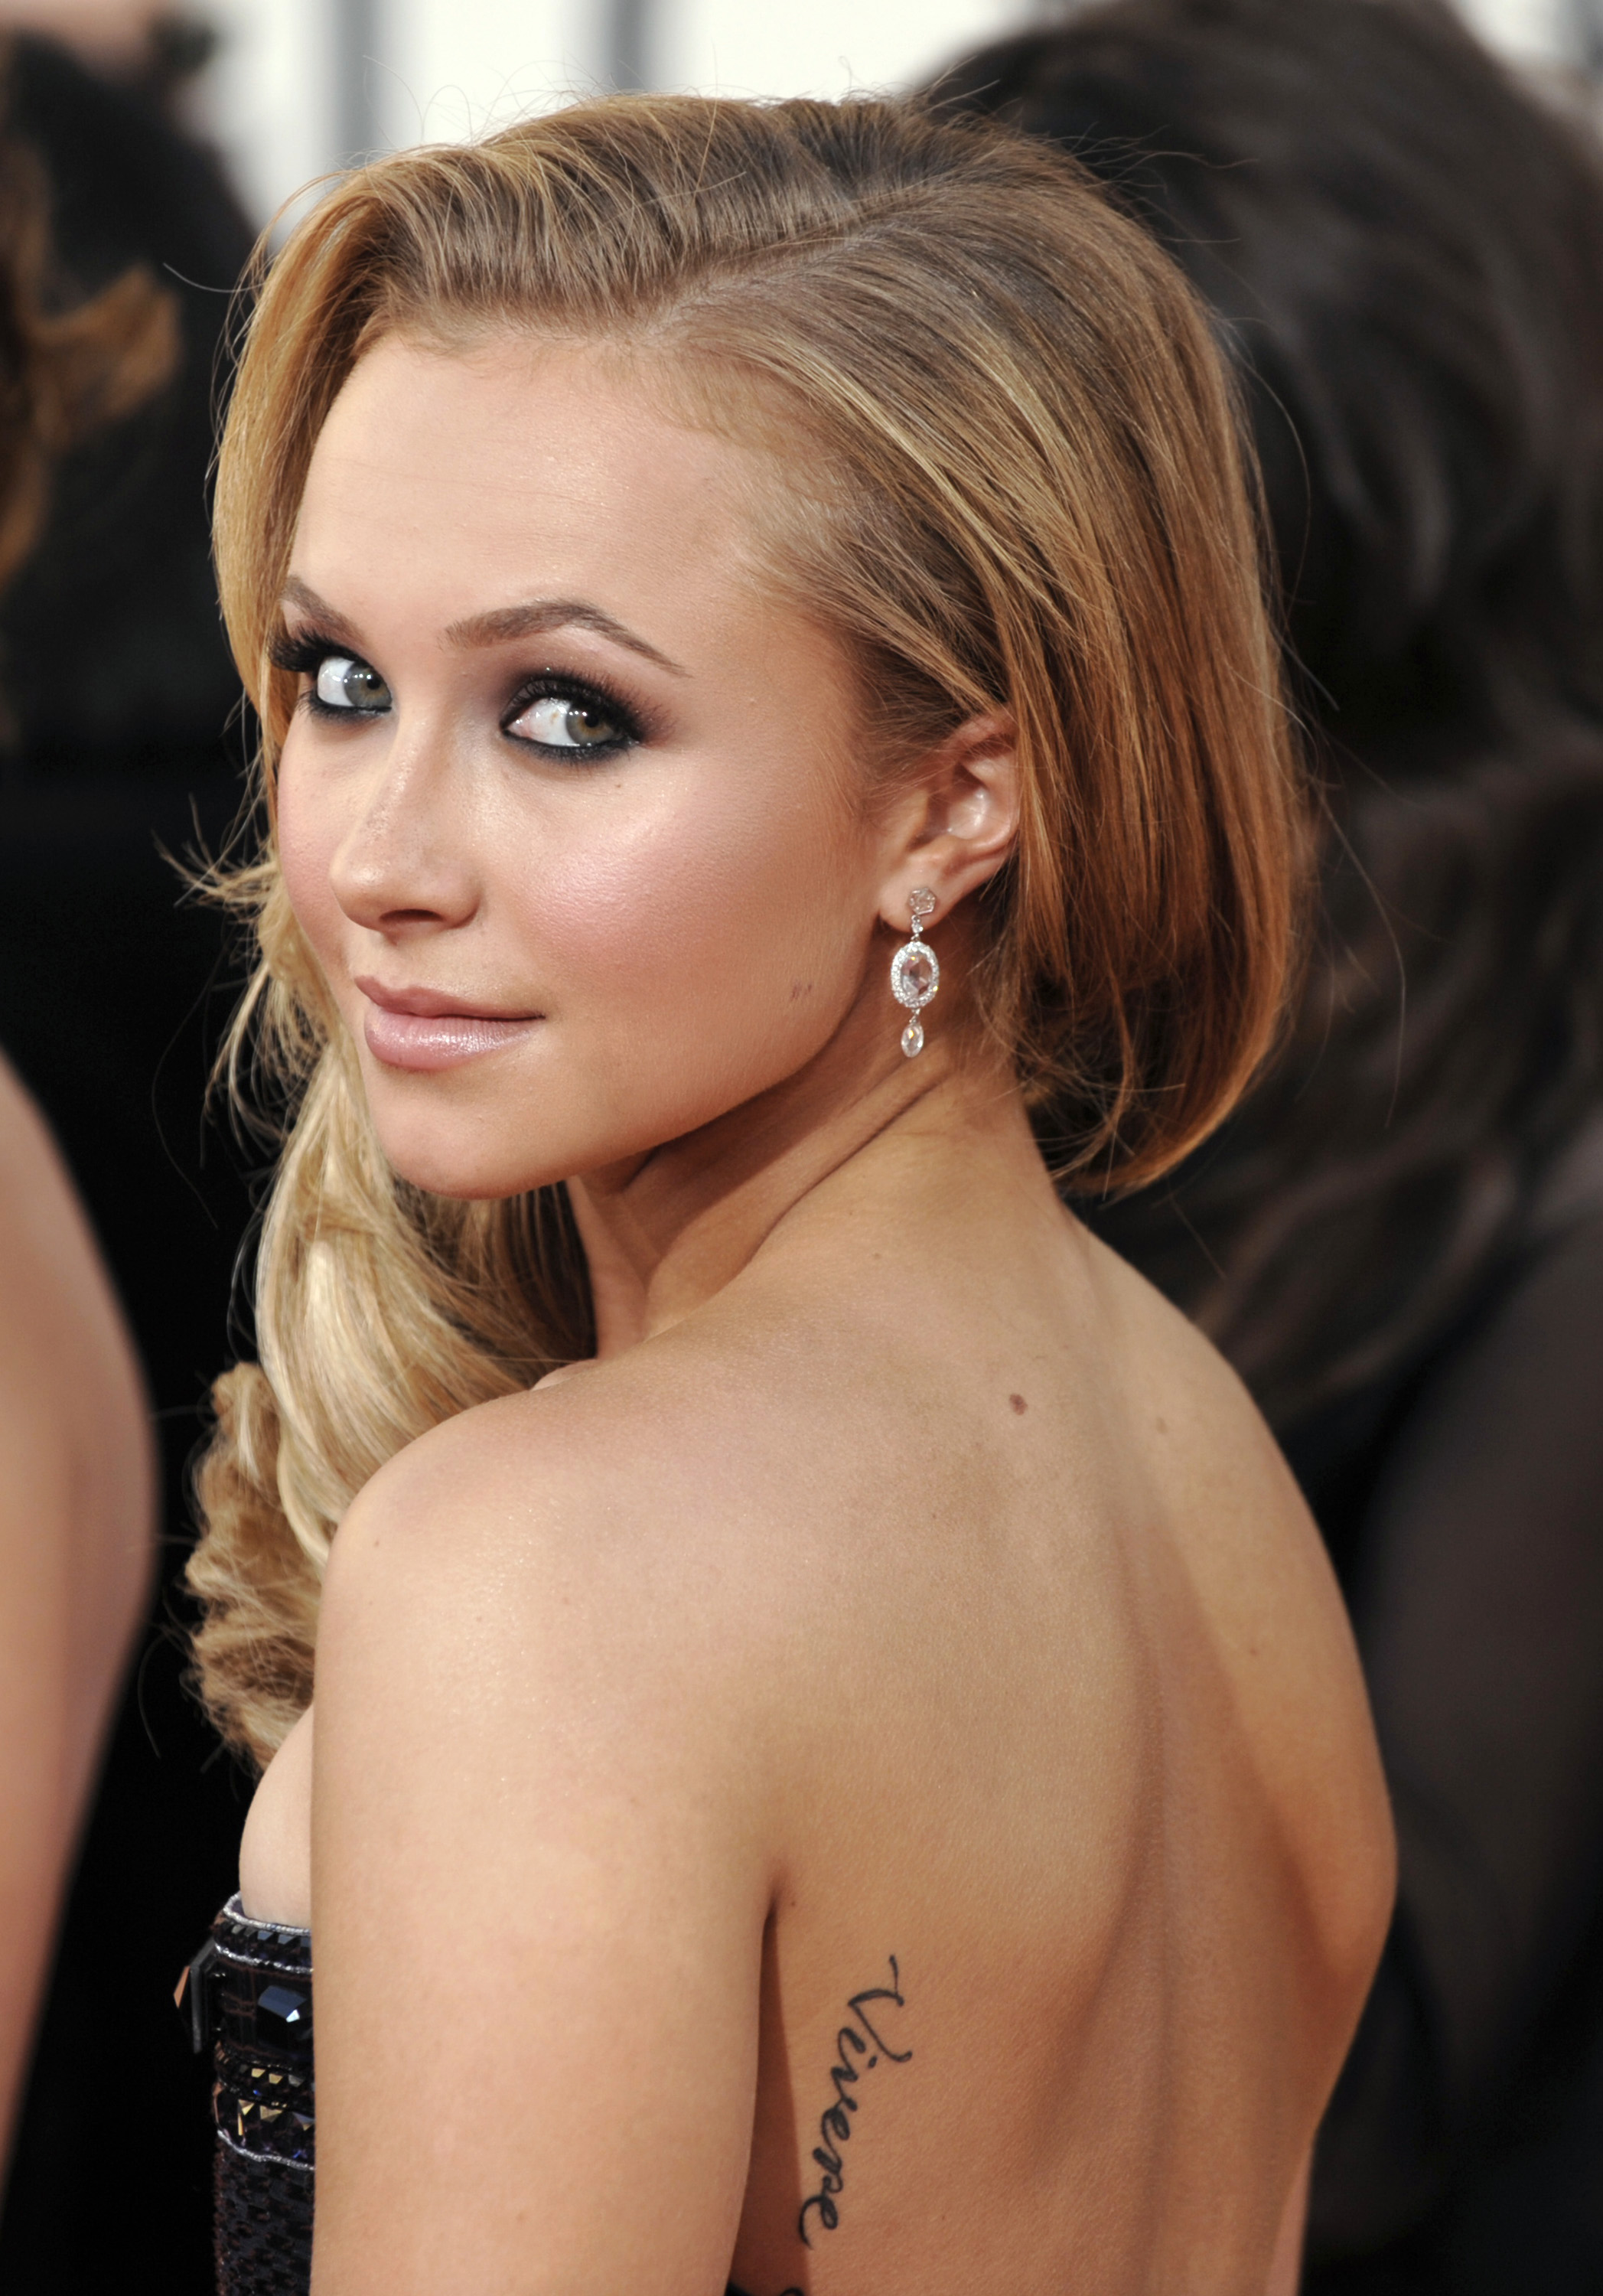 25972_Celebutopia-Hayden_Panettiere_arrives_at_the_66th_Annual_Golden_Globe_Awards-04_122_539lo.jpg